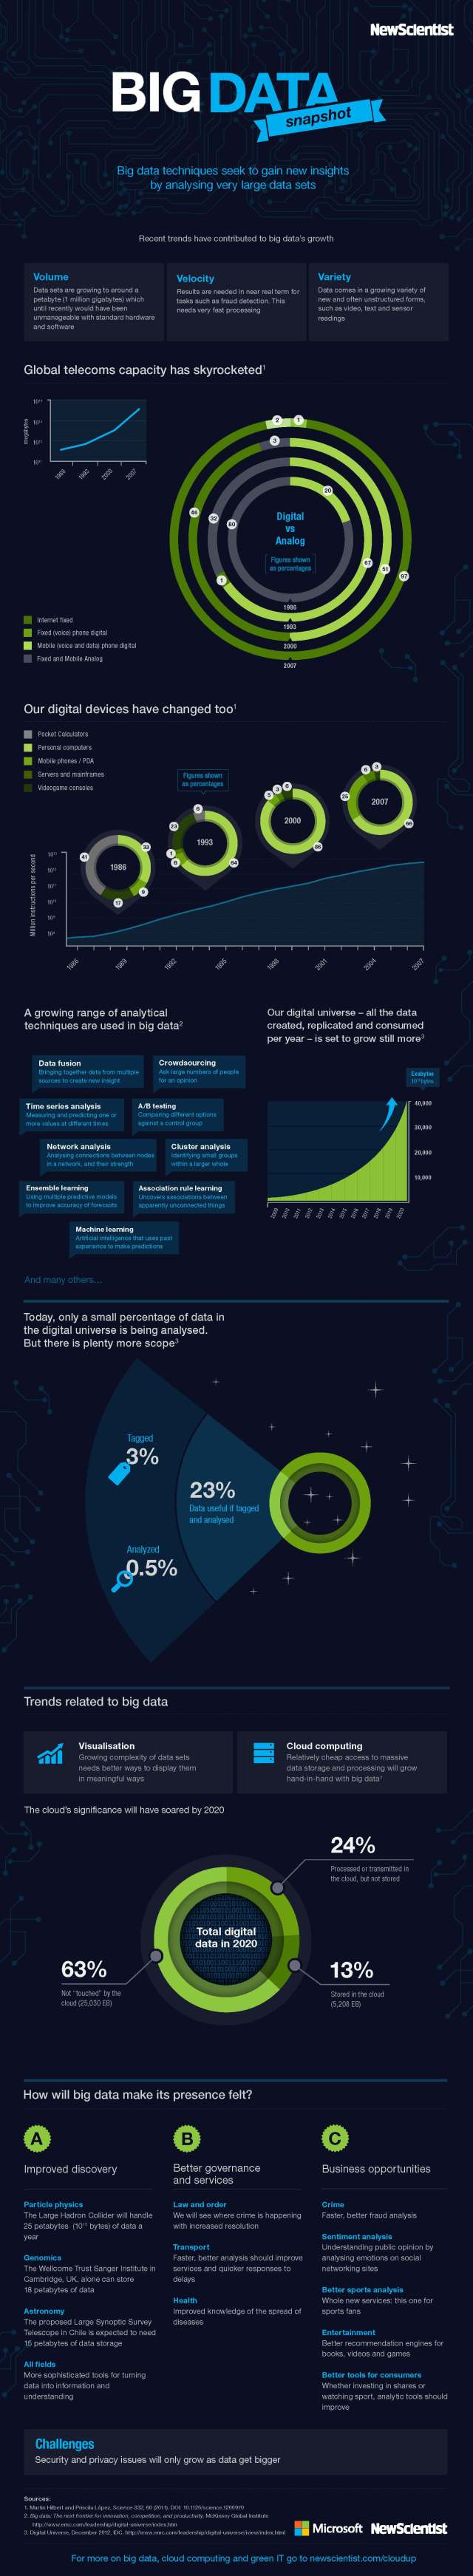 Bigdata_newscientist-infographic